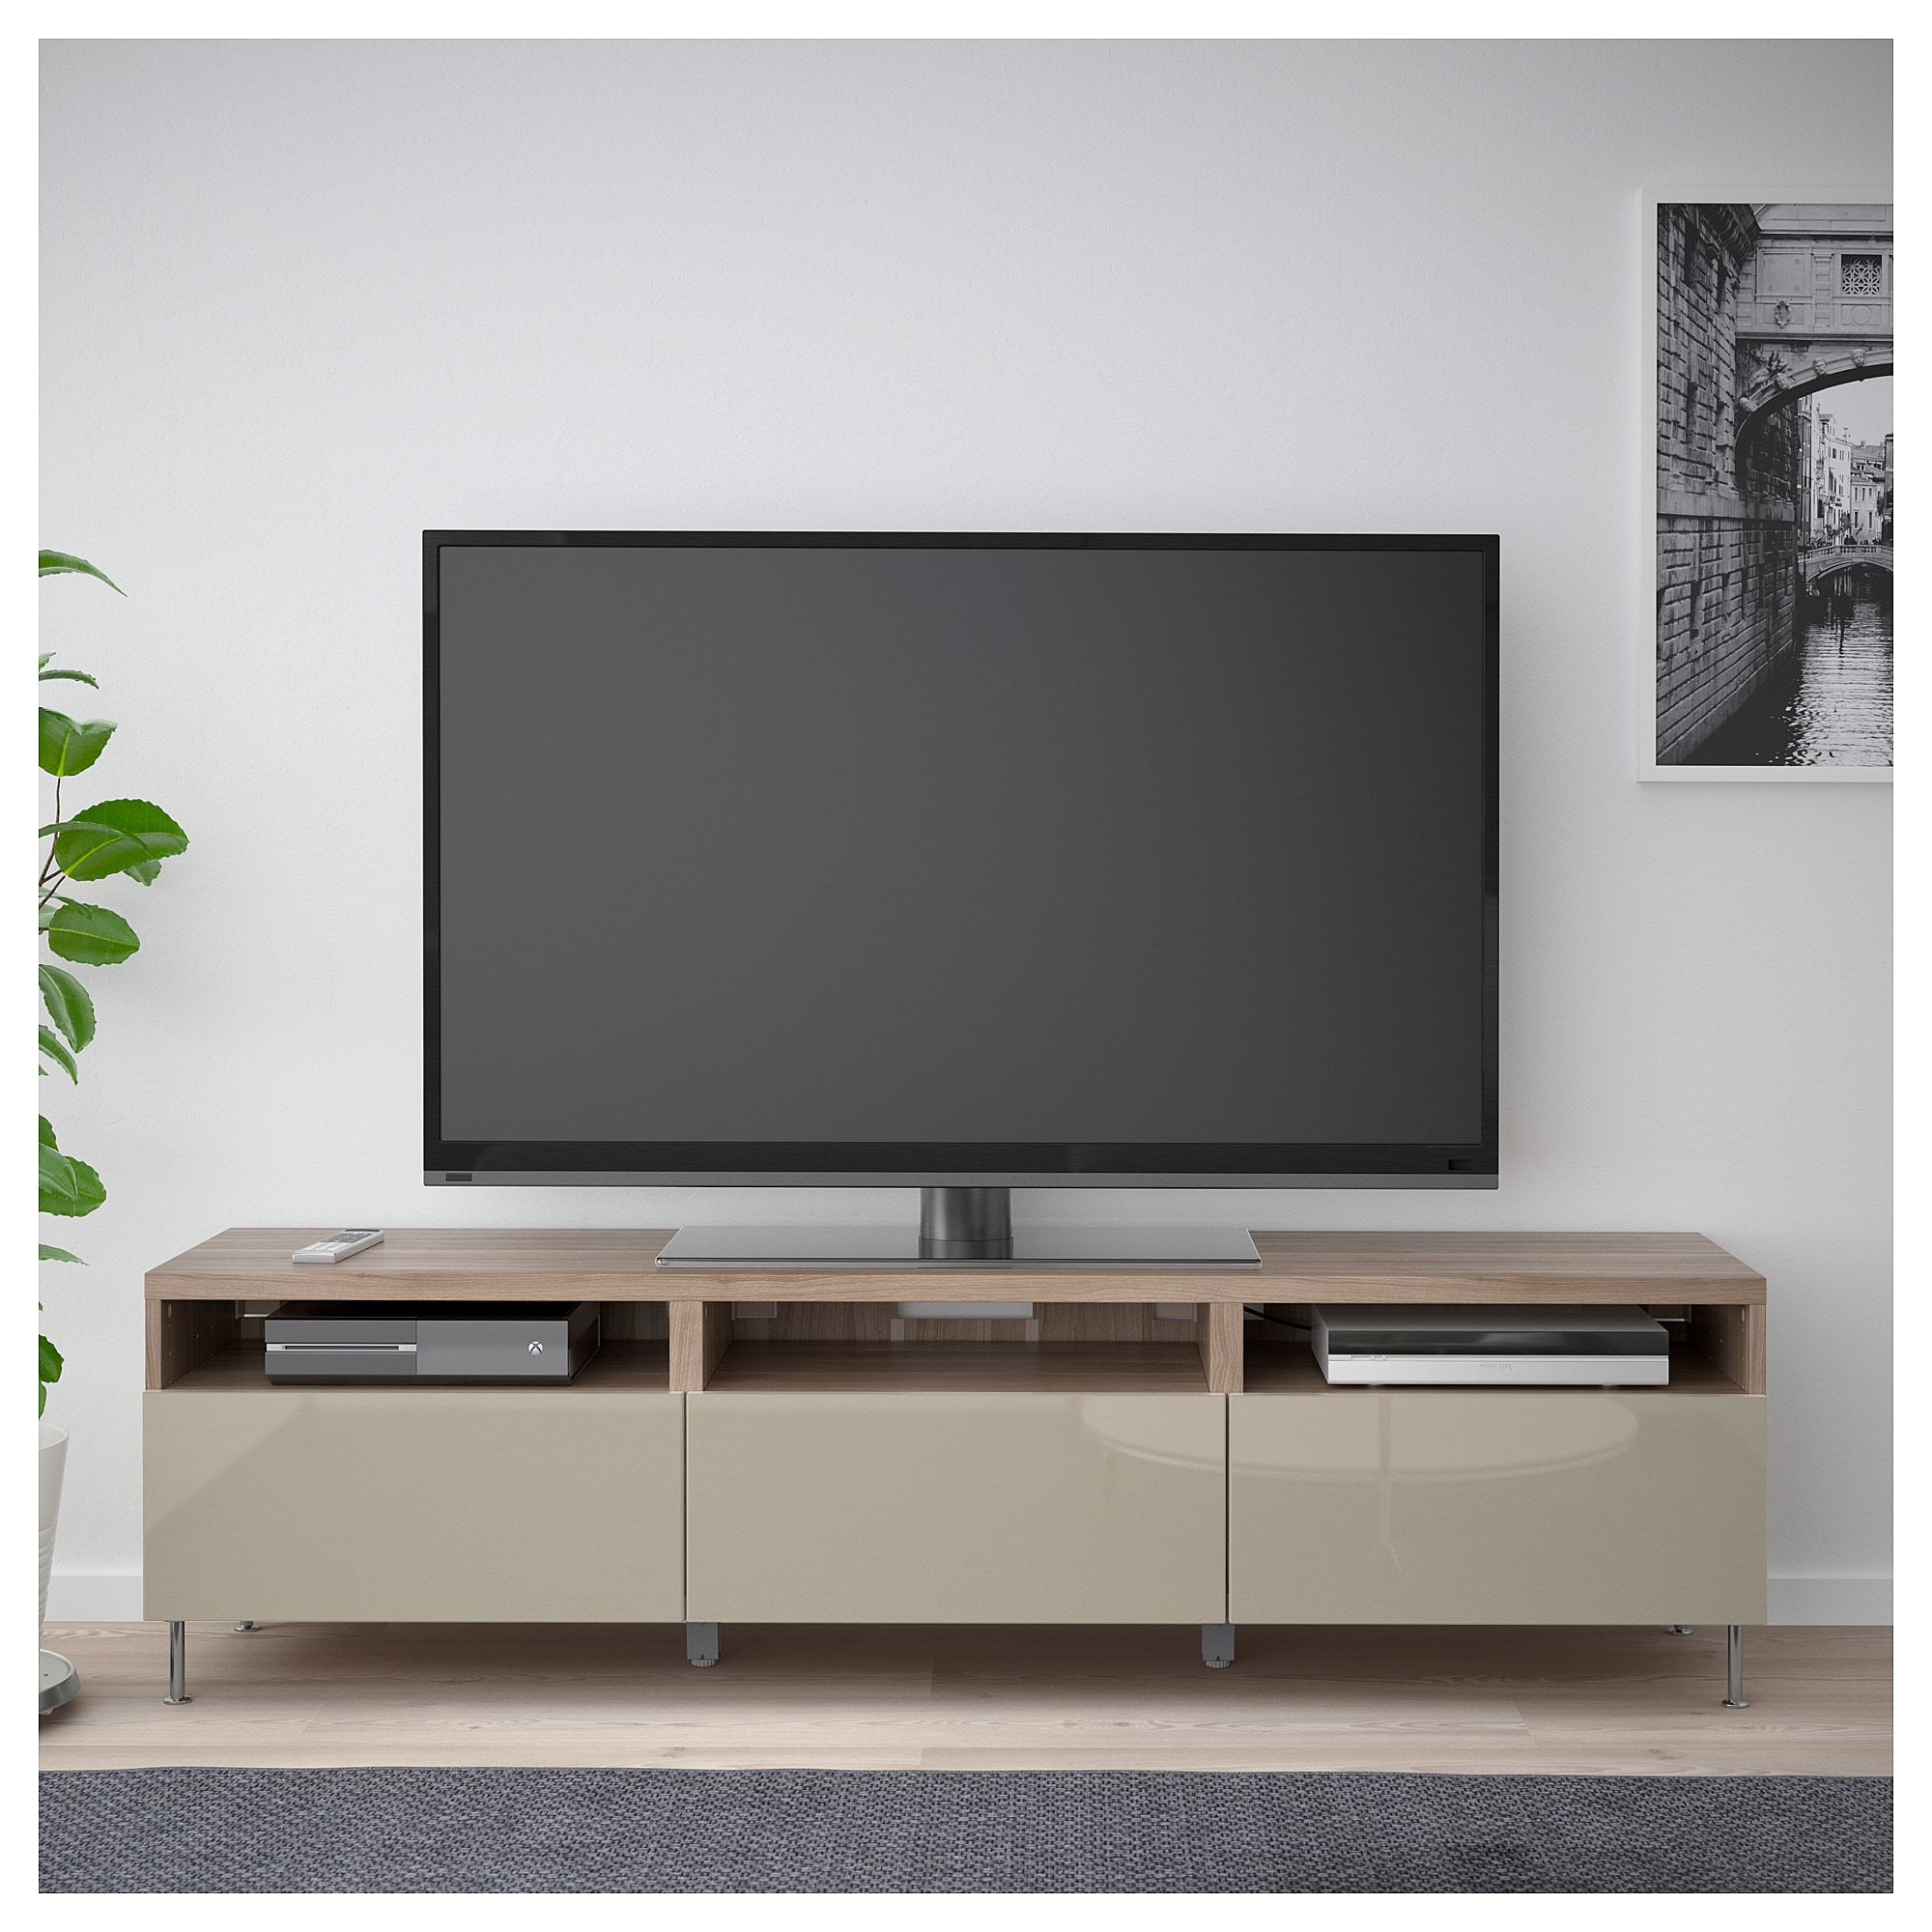 Furniture And Home Furnishings Muebles Para Tv Muebles